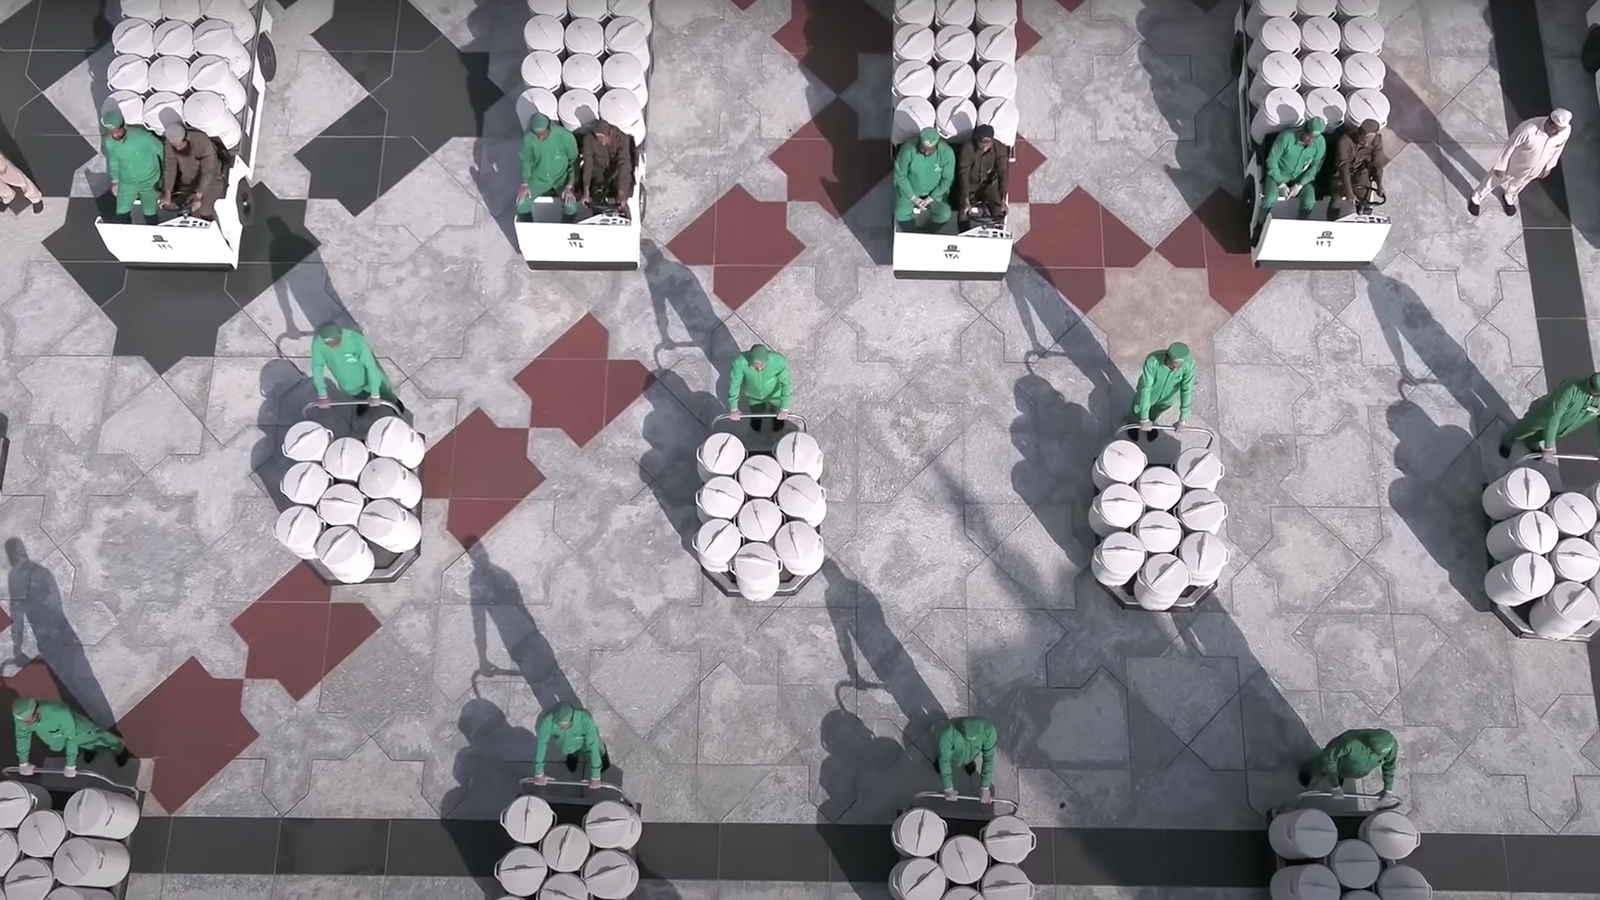 Workers pose with zamzam water coolers for a video in Mecca, Saudi Arabia. Video screengrab